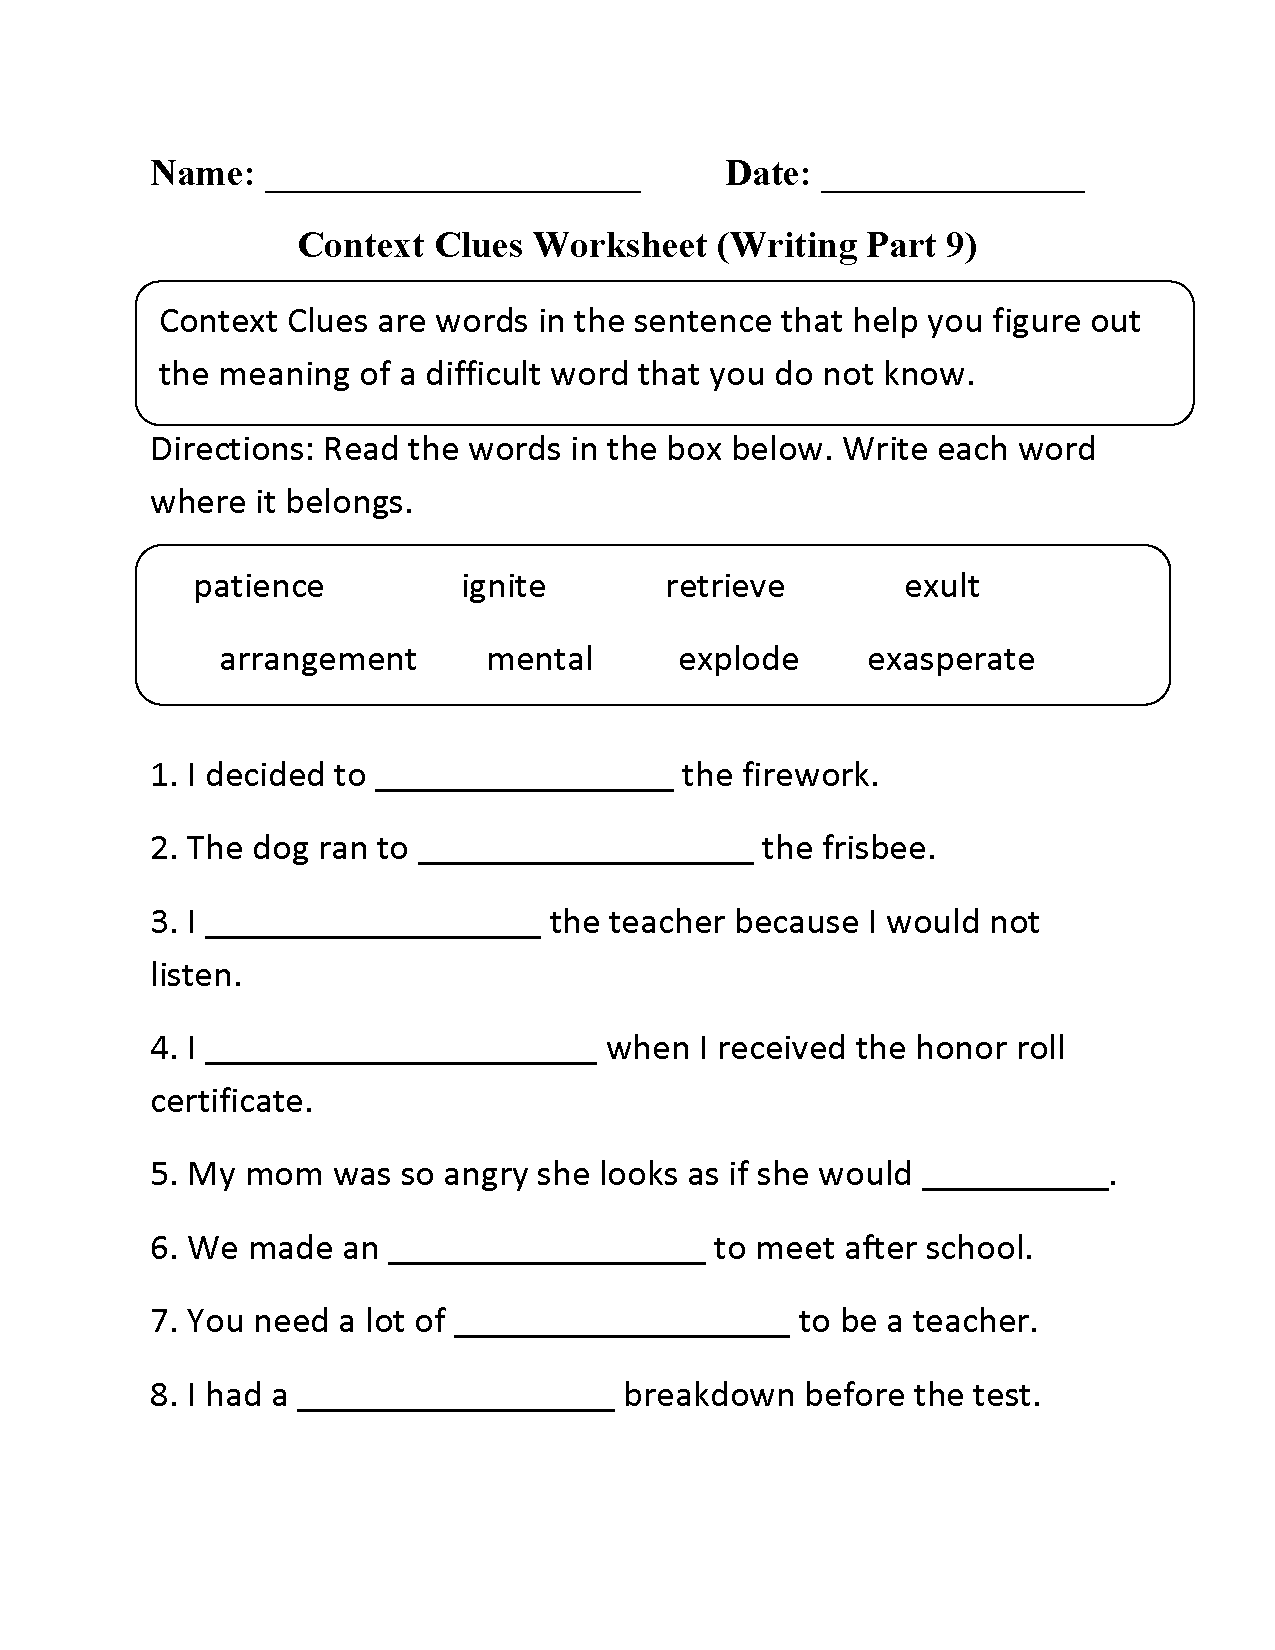 Worksheets Context Clues Worksheets context clues worksheet writing part 9 intermediate language intermediate